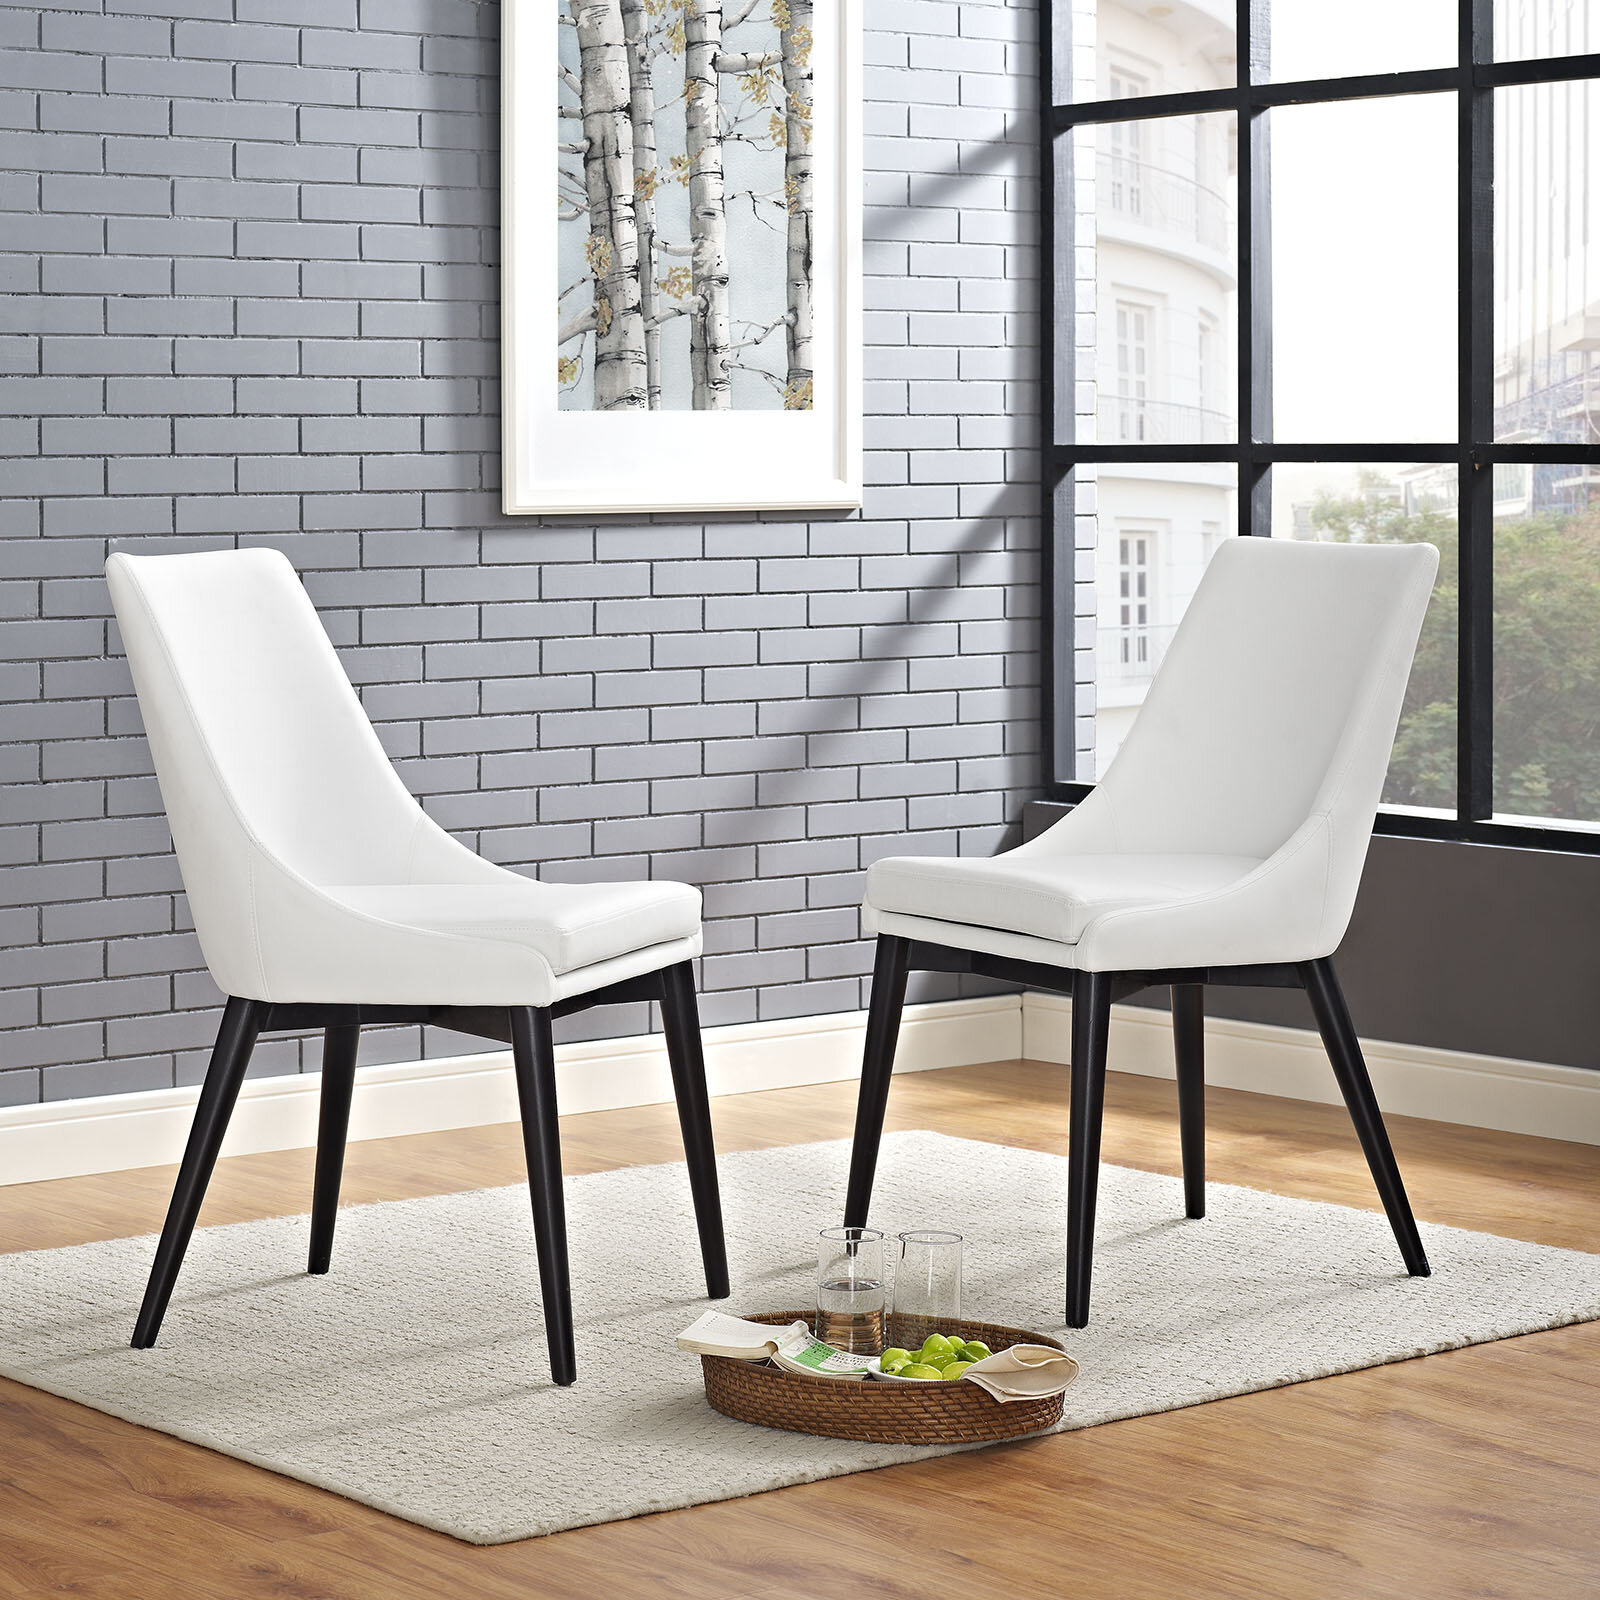 Minton Upholstered Dining Chair Throughout Carlton Wood Leg Upholstered Dining Chairs (View 7 of 15)